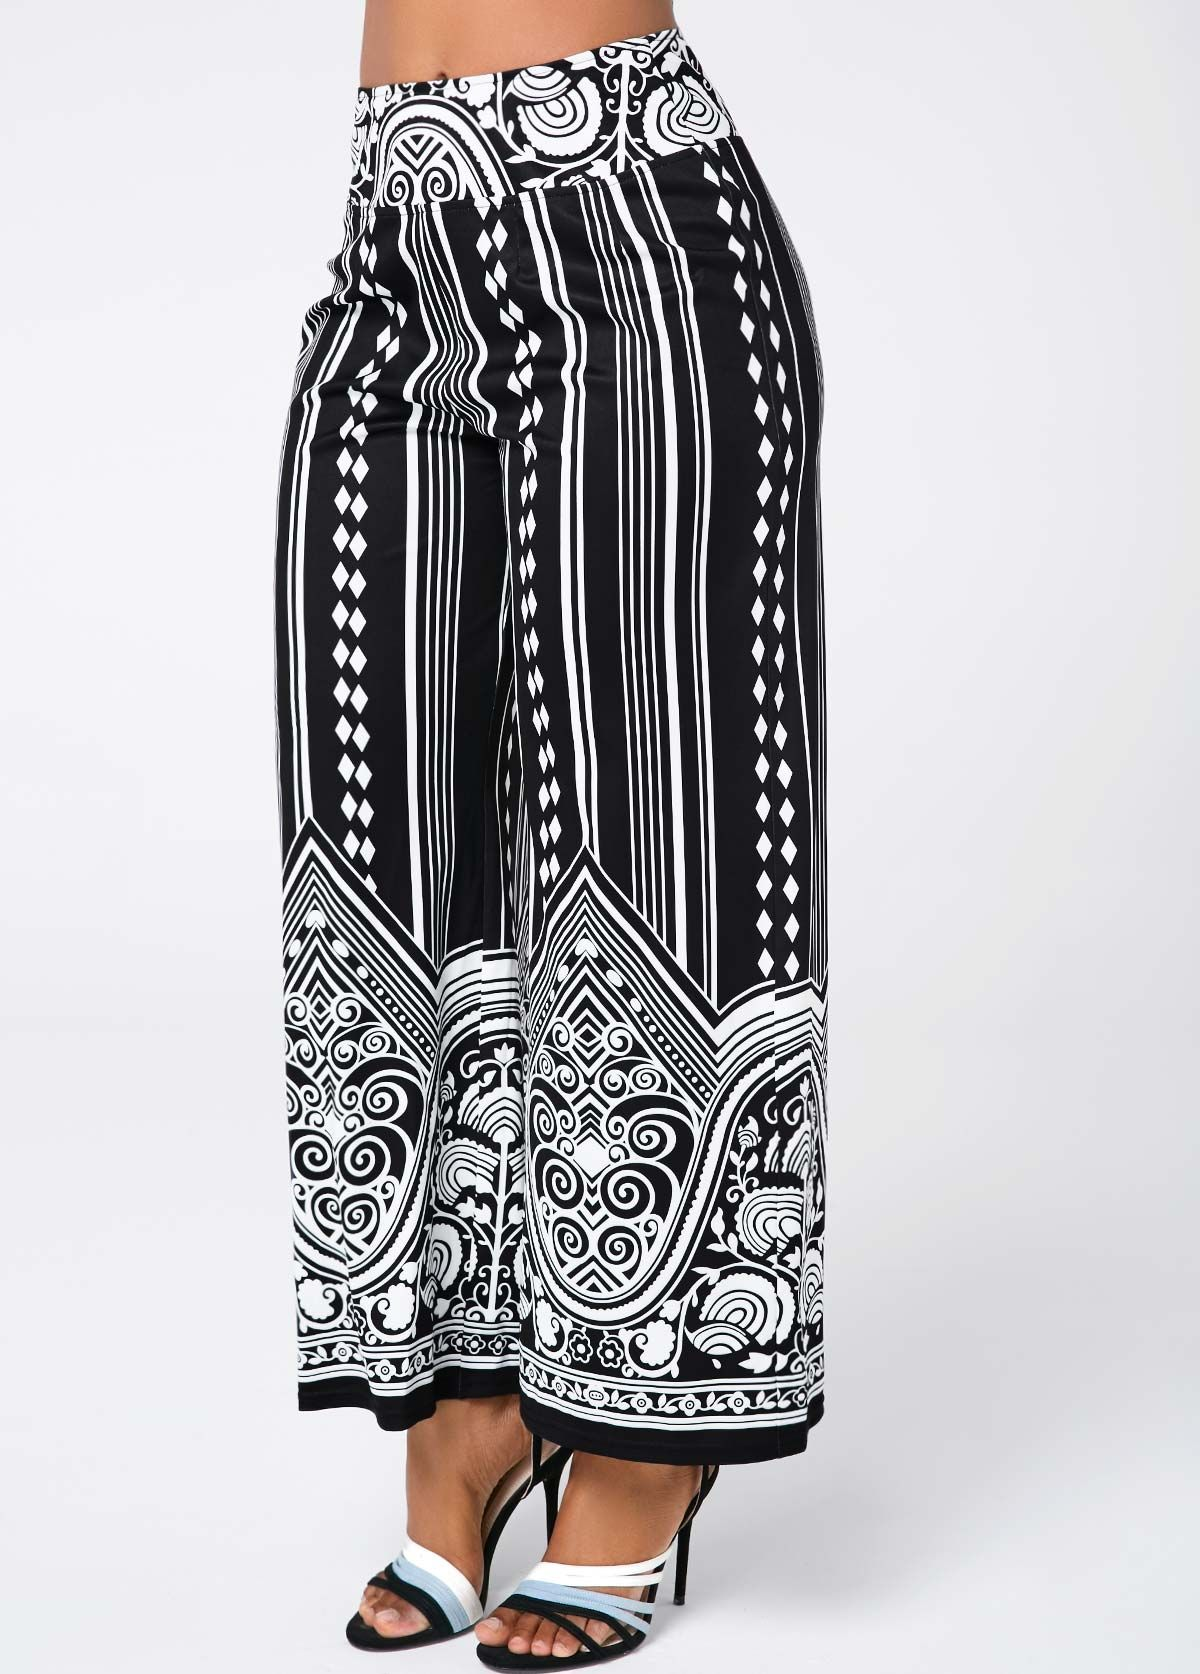 d150821c976 Tribal Print High Waist Black Pants